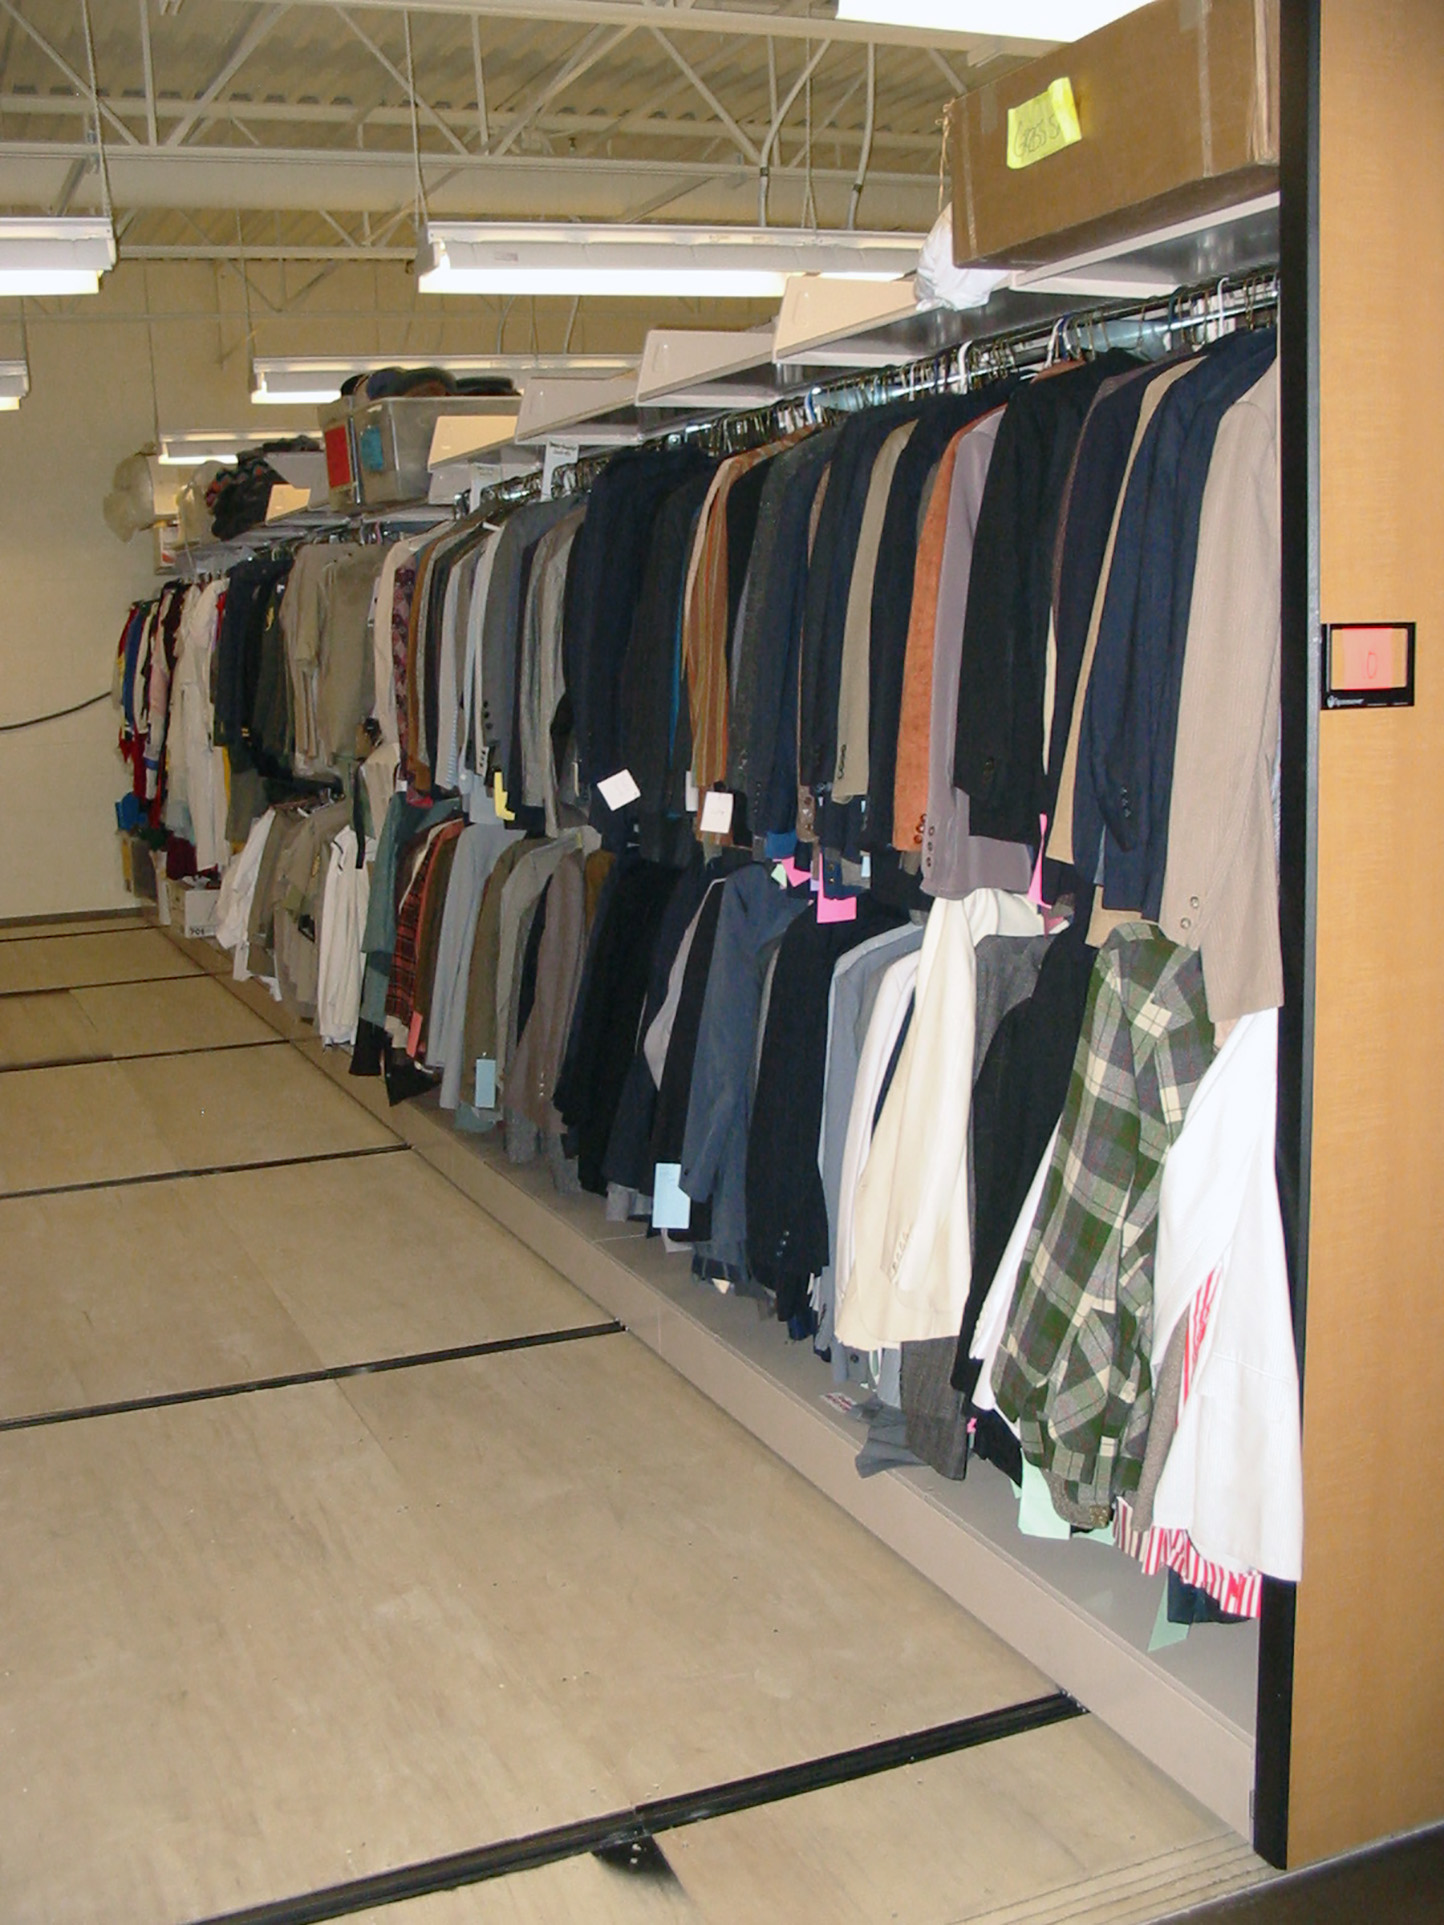 Two tiers of hanging storage for costumes at Brigham Young University Performing Arts Center